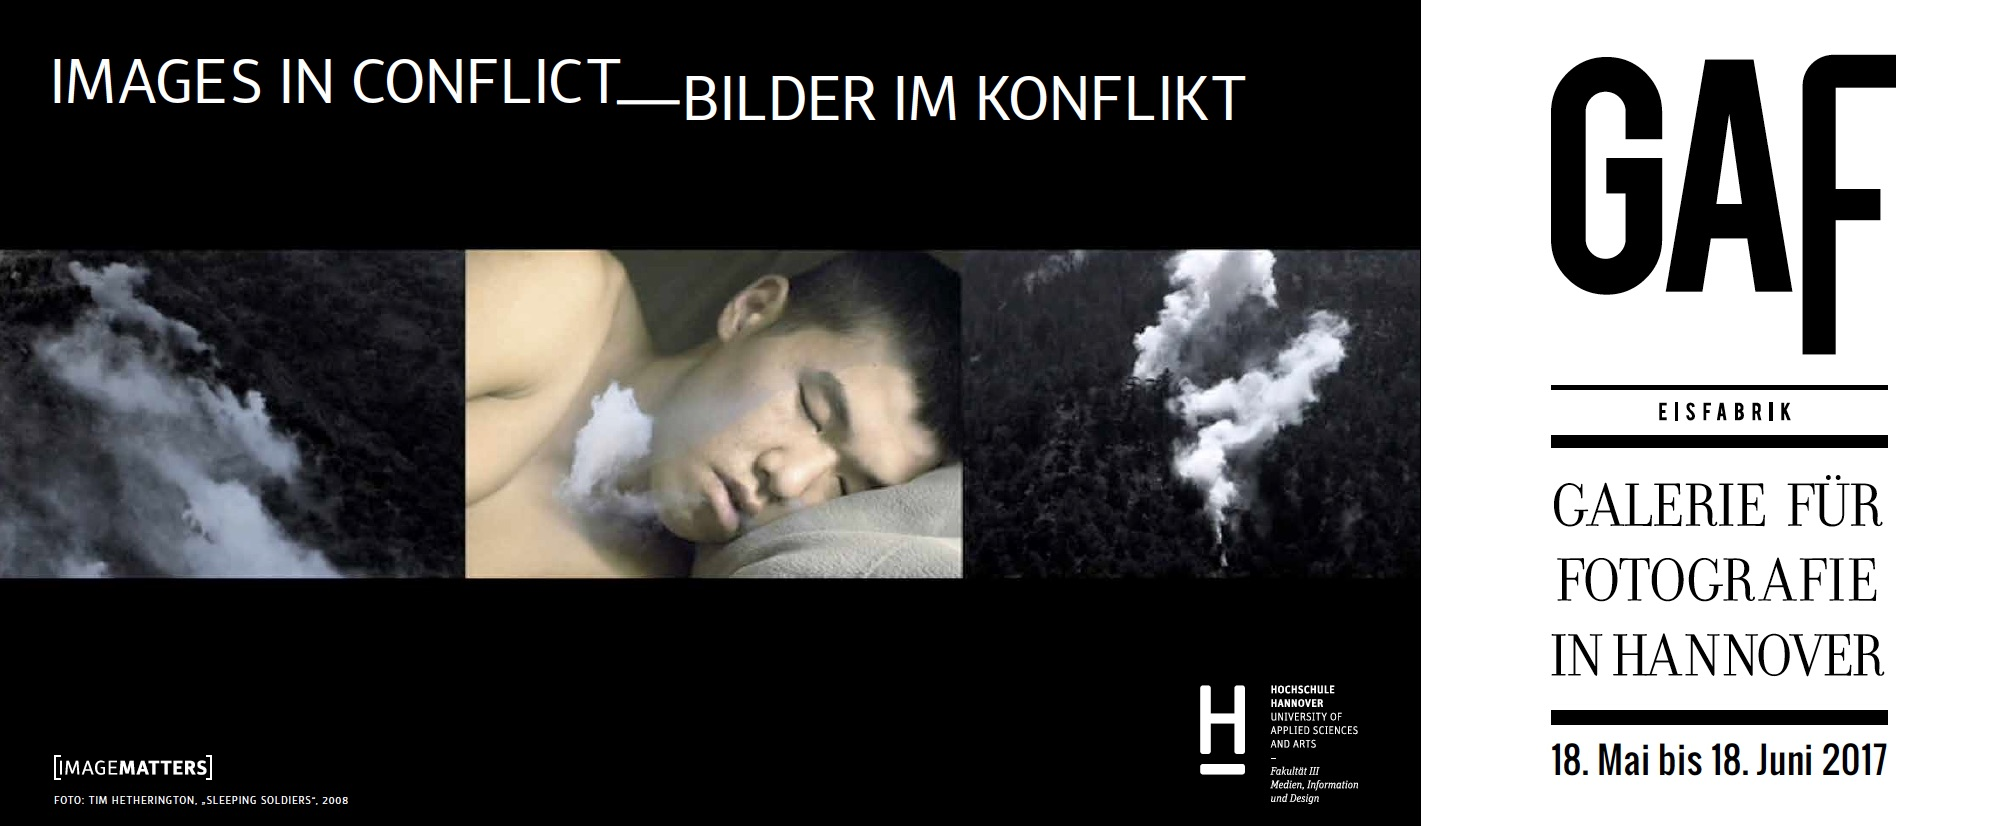 Tim Hetherington Trust Images In Conflict Symposium Hochschule Hannover University Of Applied Sciences And Arts Hanover